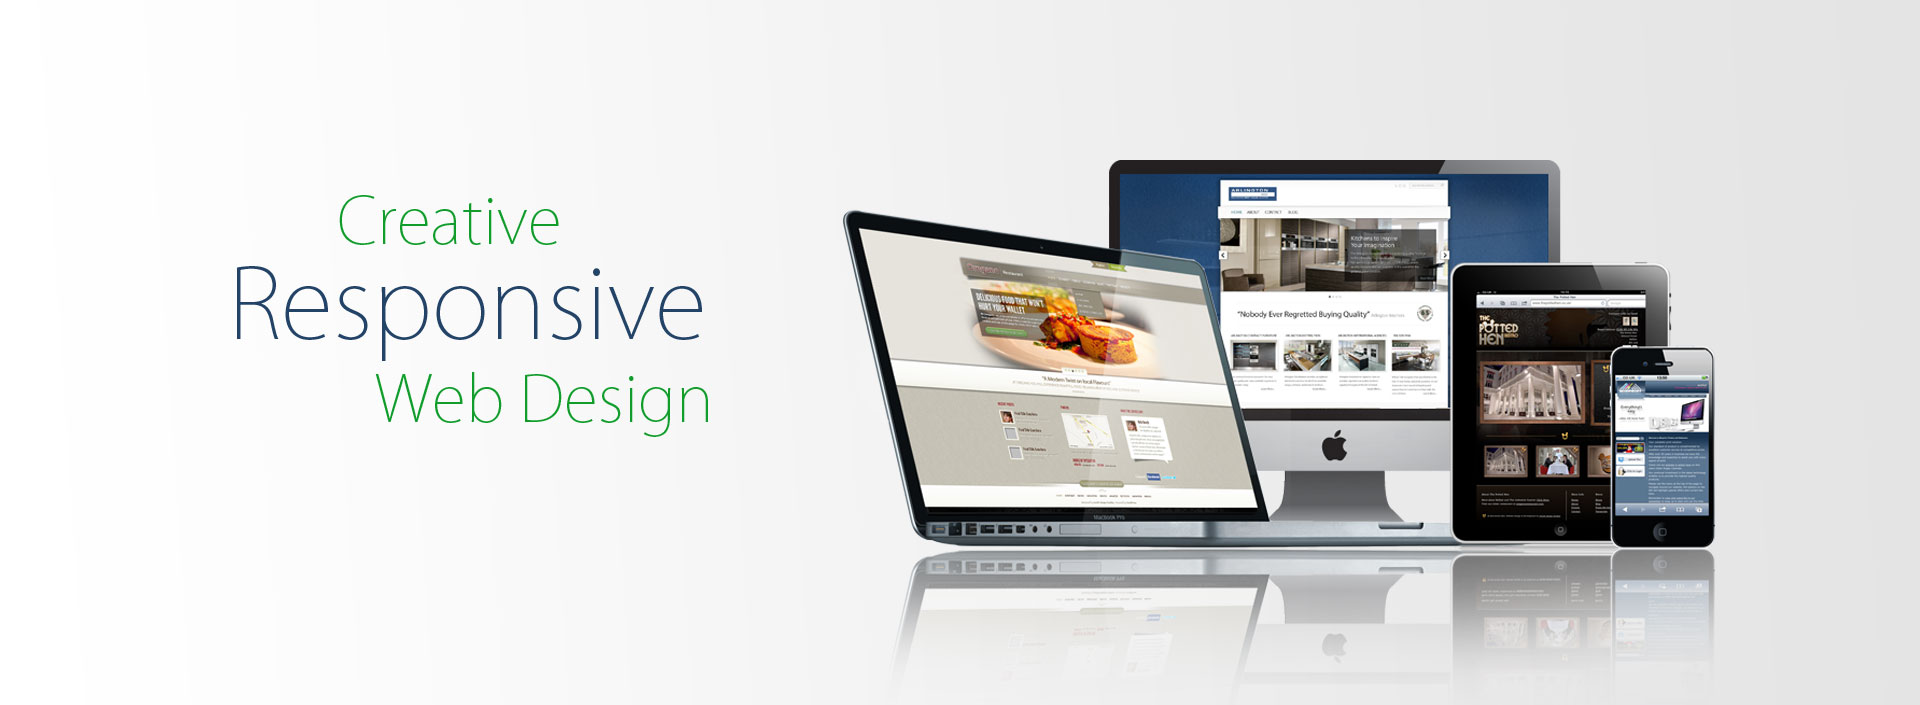 Creative Responsive Web Design